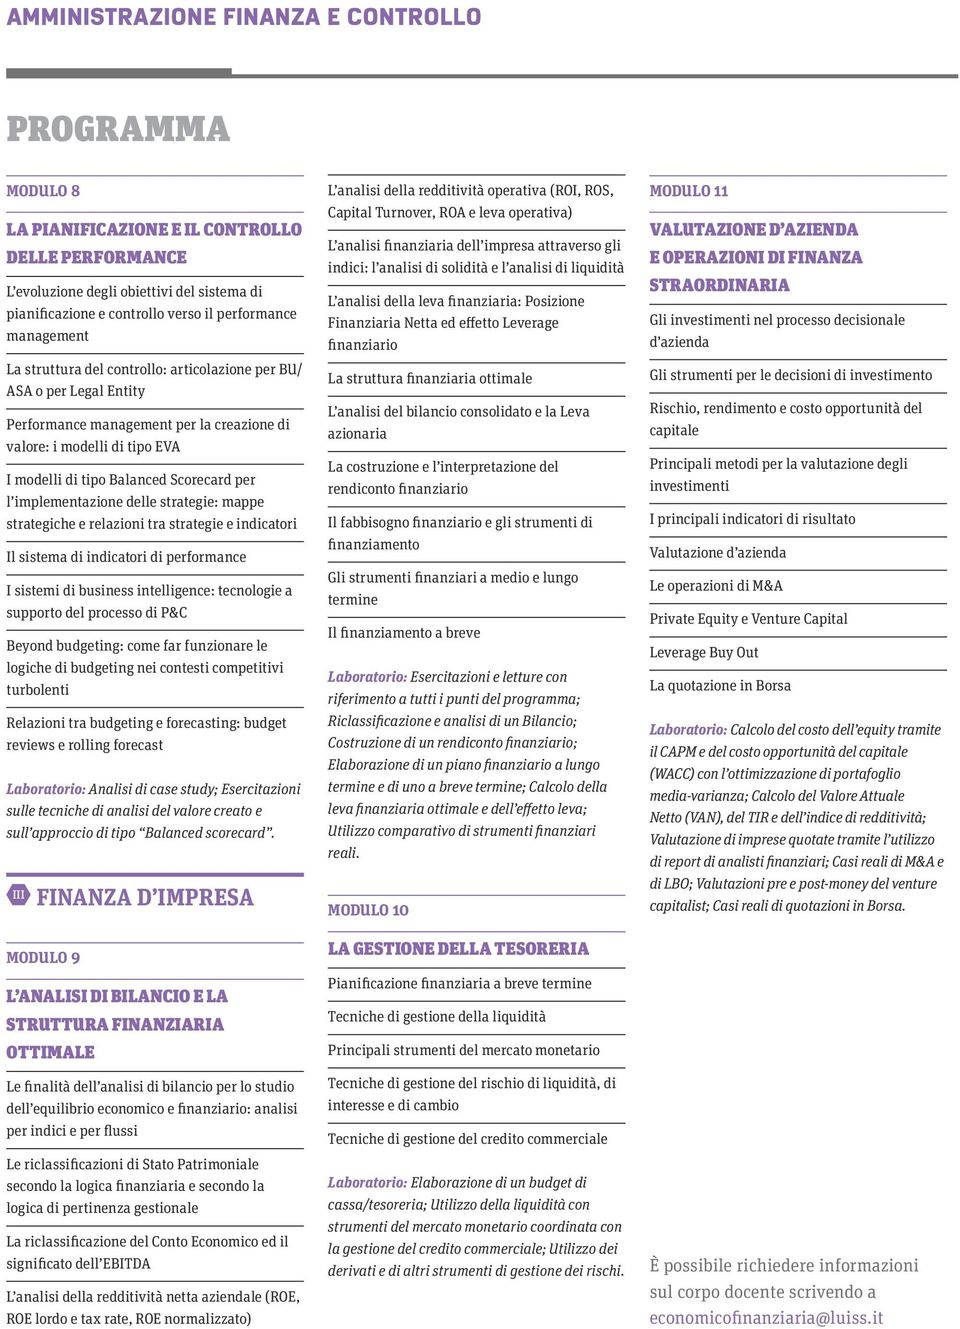 implementazione delle strategie: mappe strategiche e relazioni tra strategie e indicatori Il sistema di indicatori di performance I sistemi di business intelligence: tecnologie a supporto del